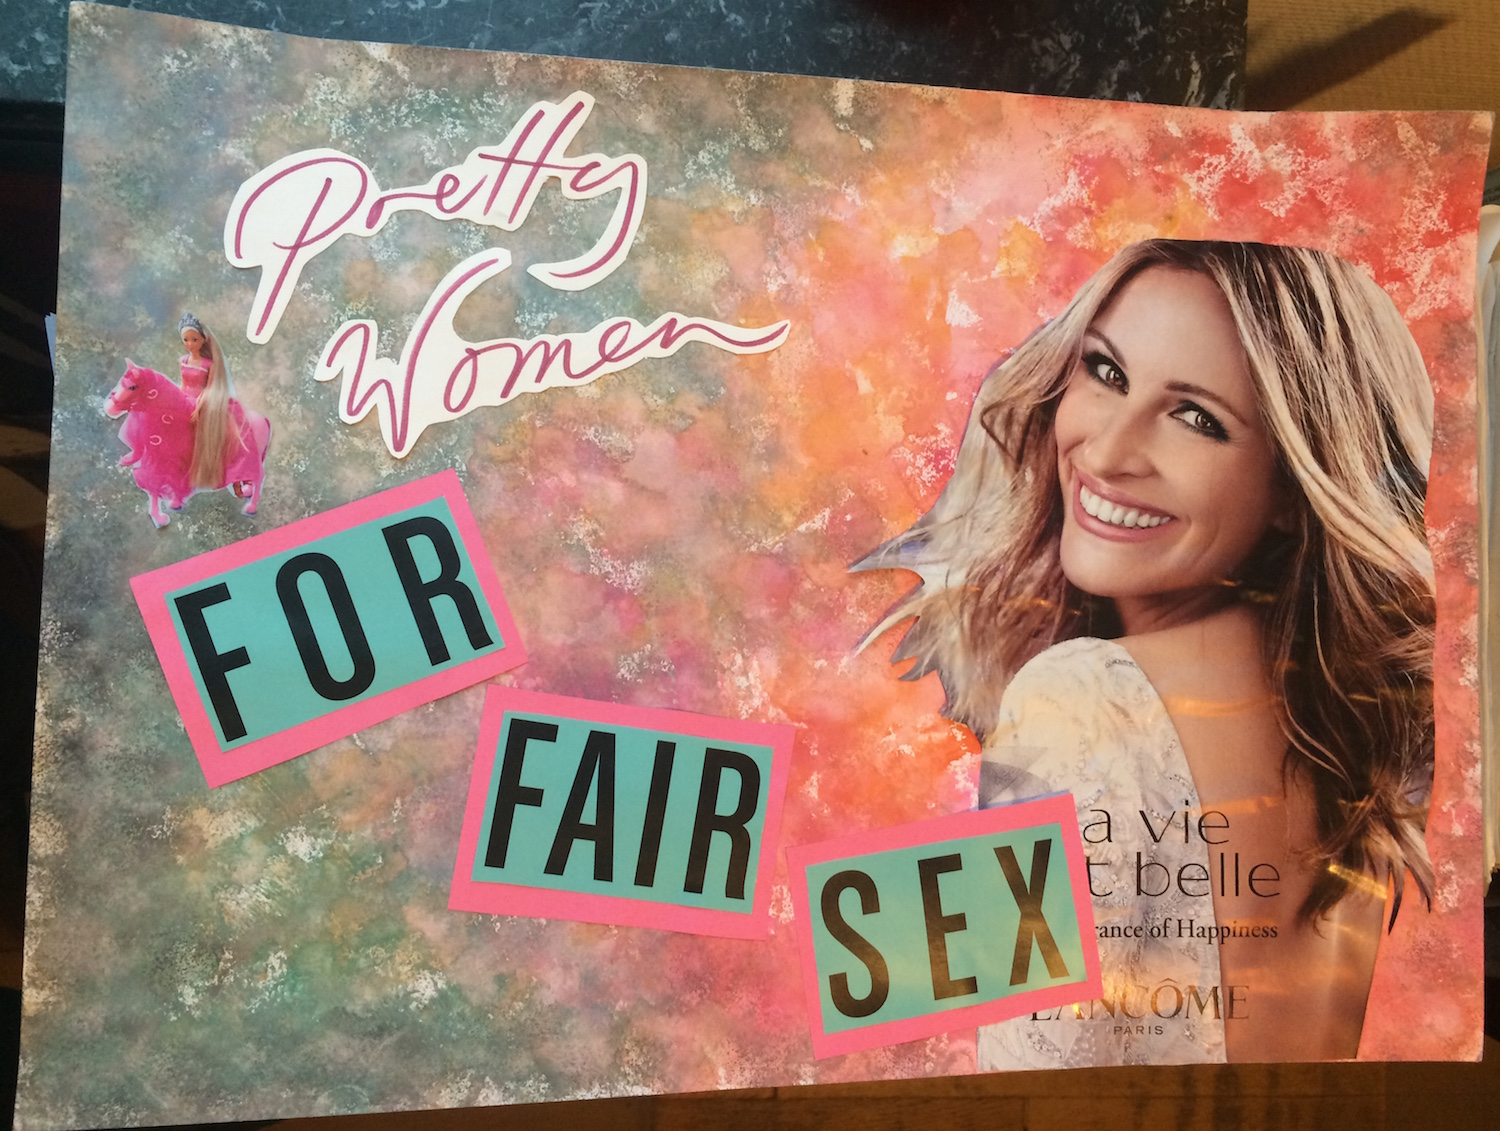 Pretty women - for fair sex